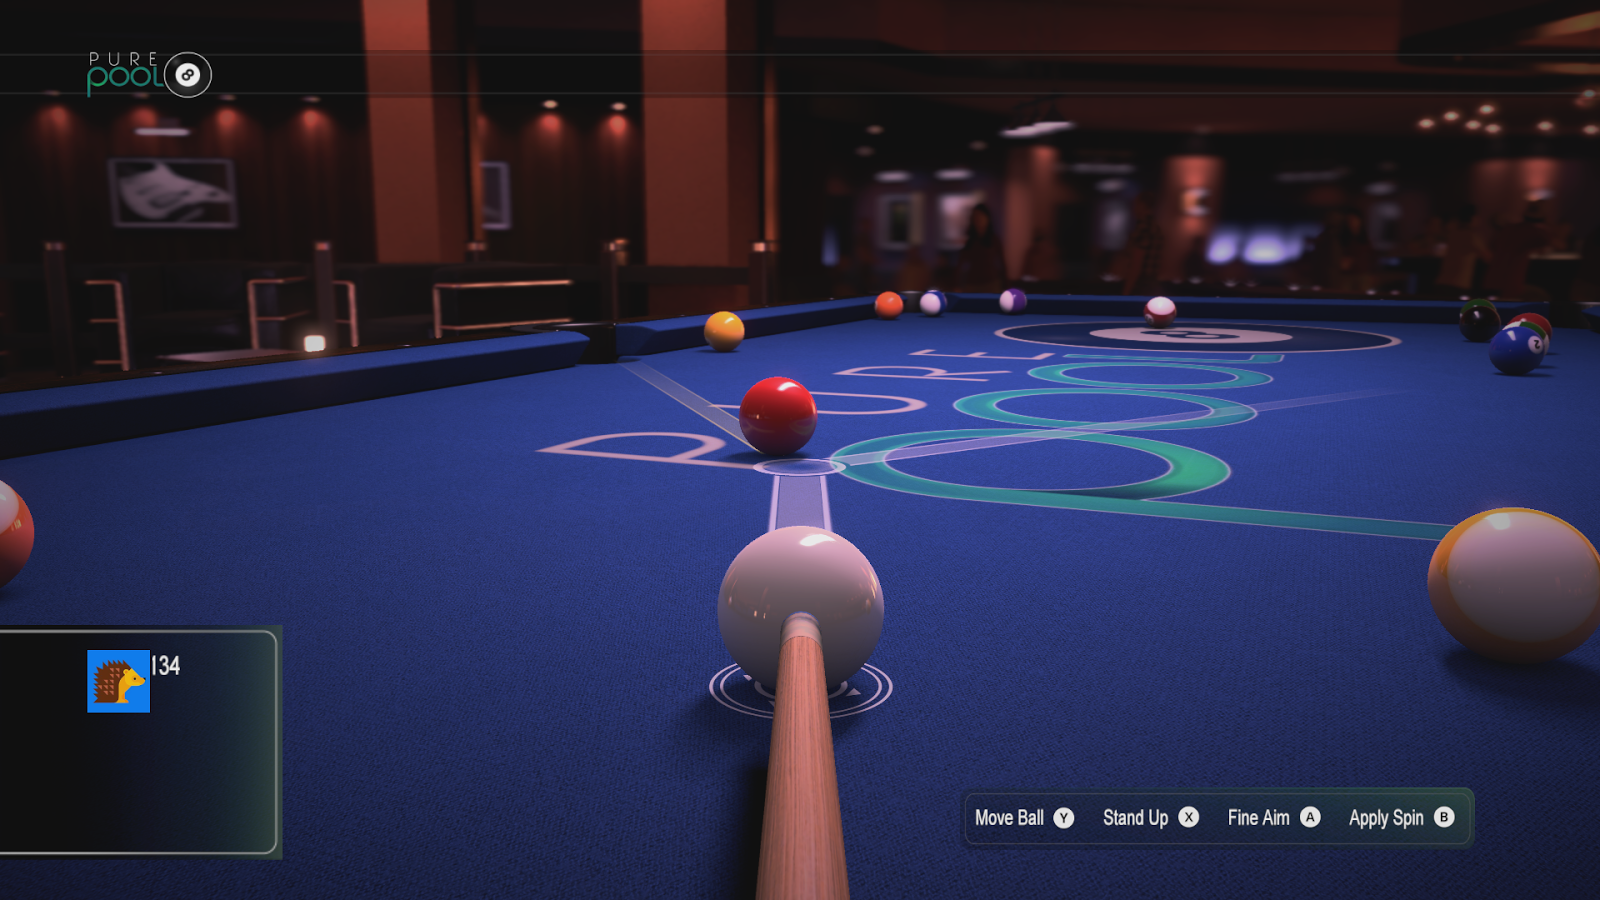 New Xbox One Indie Games : Indie game news shiny new pure pool xbox one screenshots